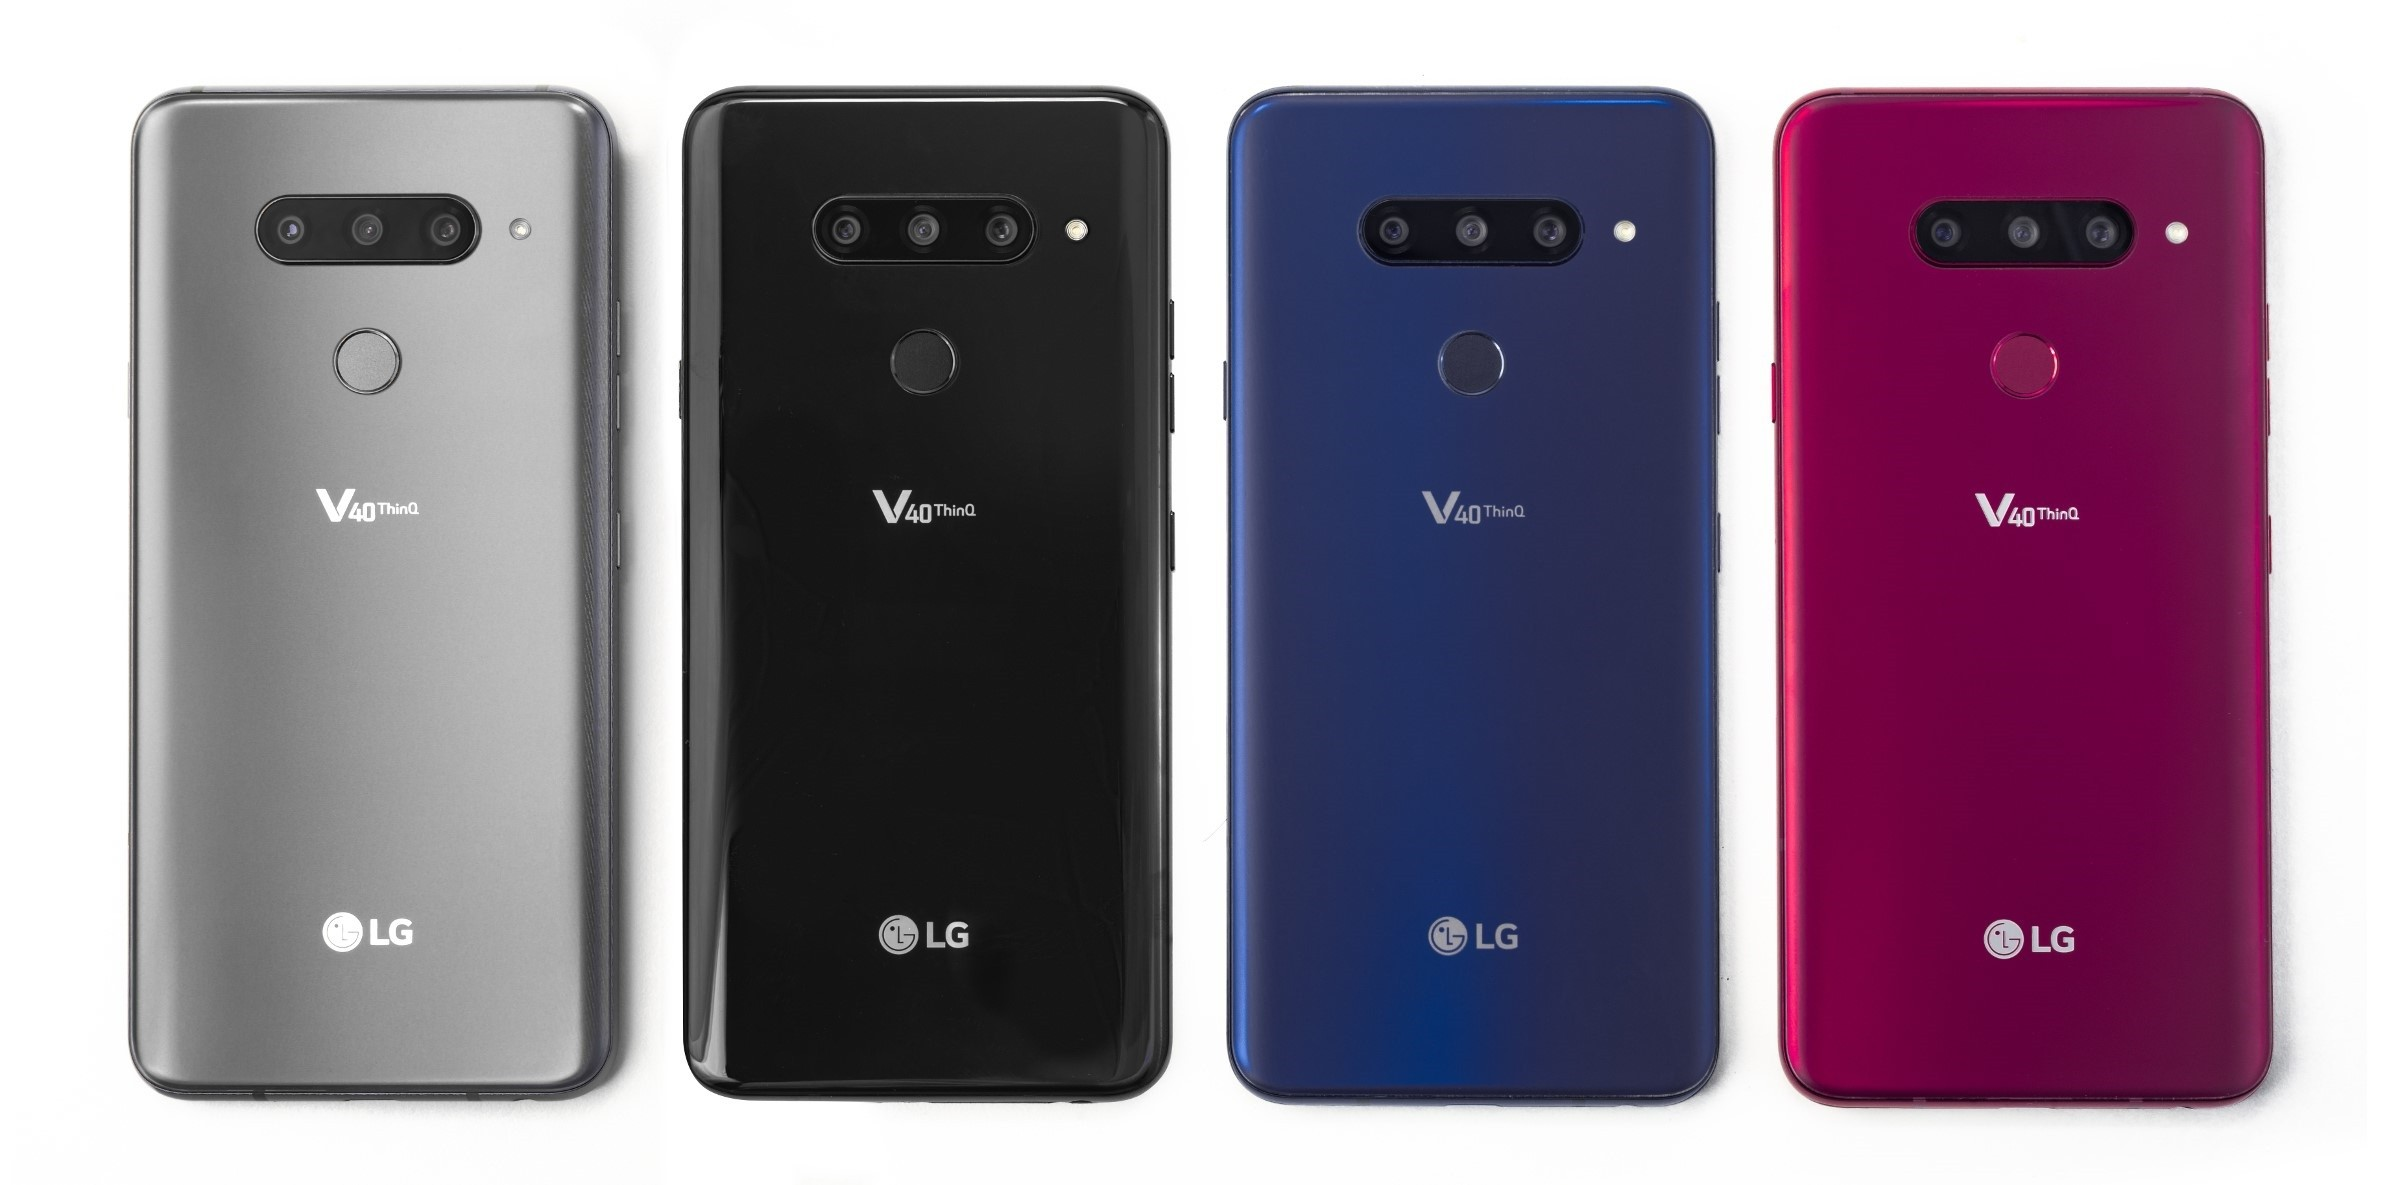 The rear view of the LG V40 ThinQ in New Platinum Gray, New Aurora Black, New Moroccan Blue and Carmine Red, side-by-side